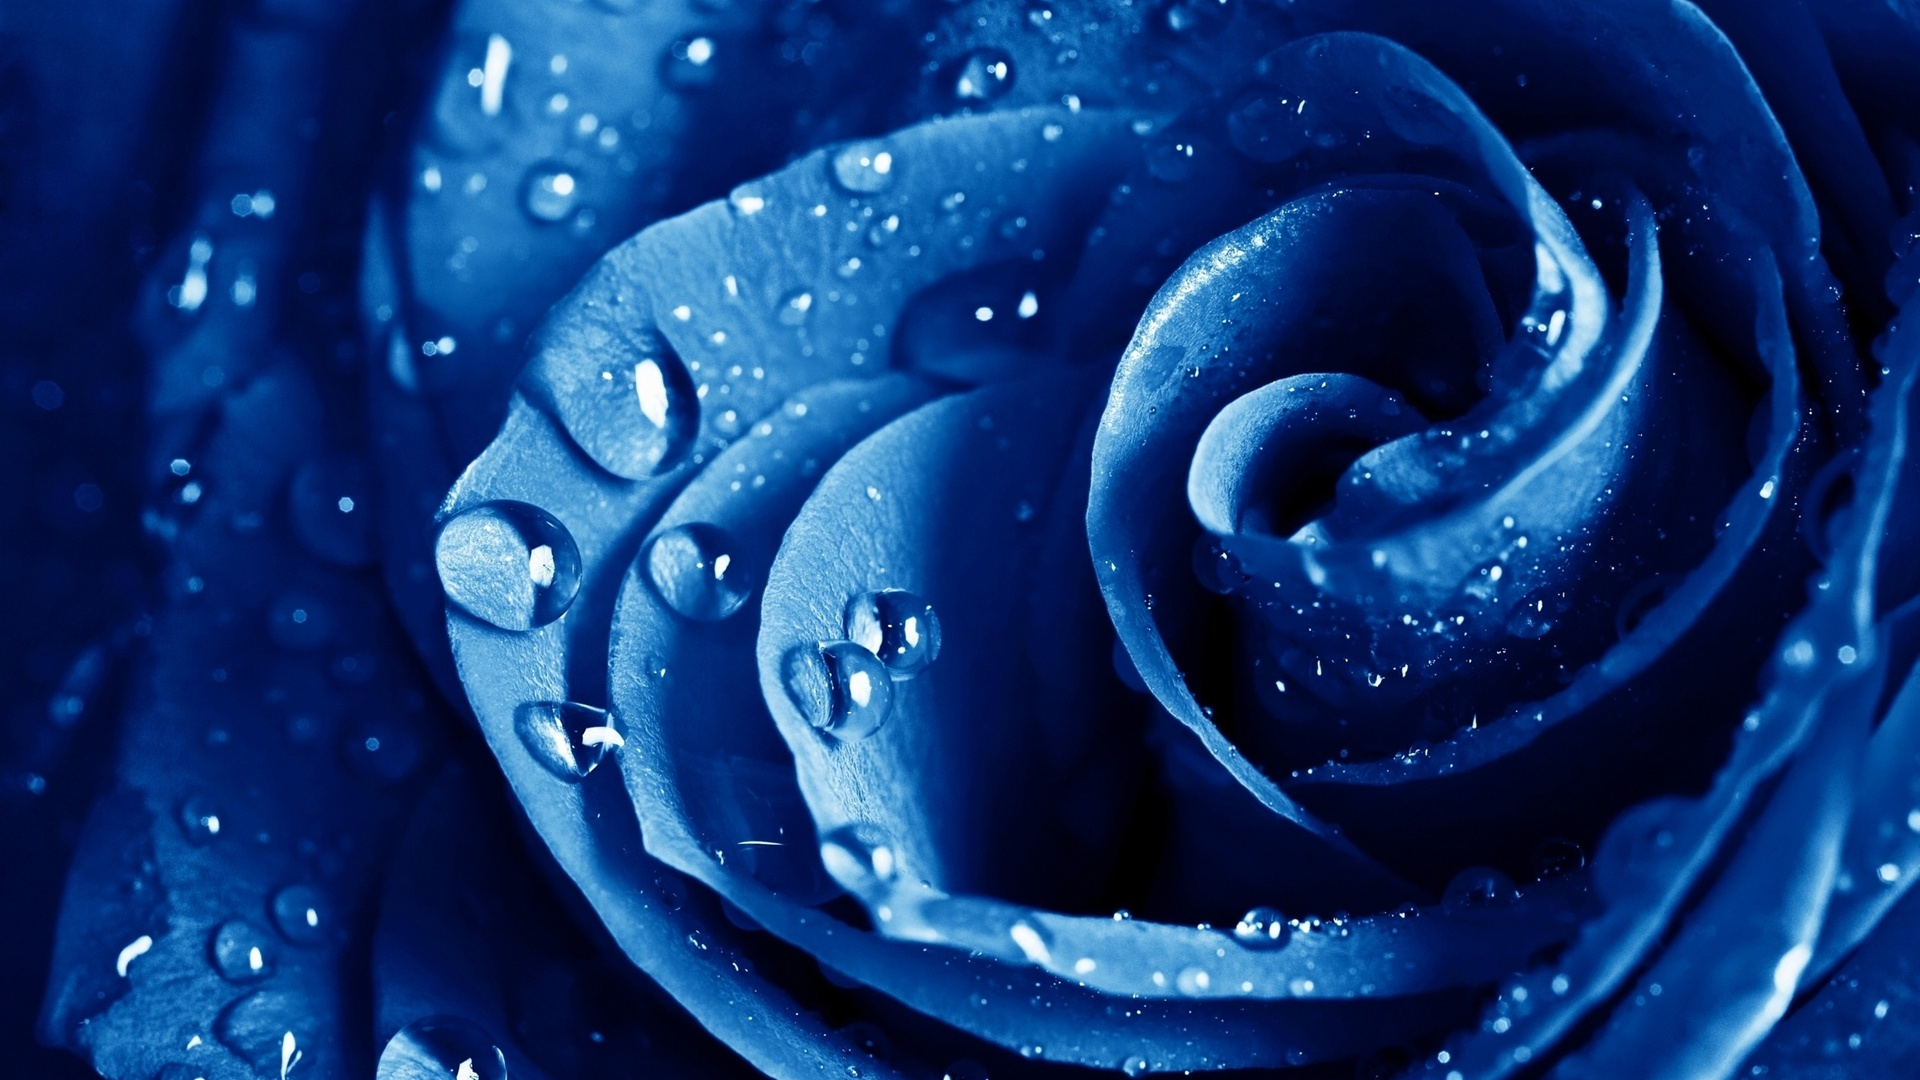 macro blue flower wallpaper - photo #8